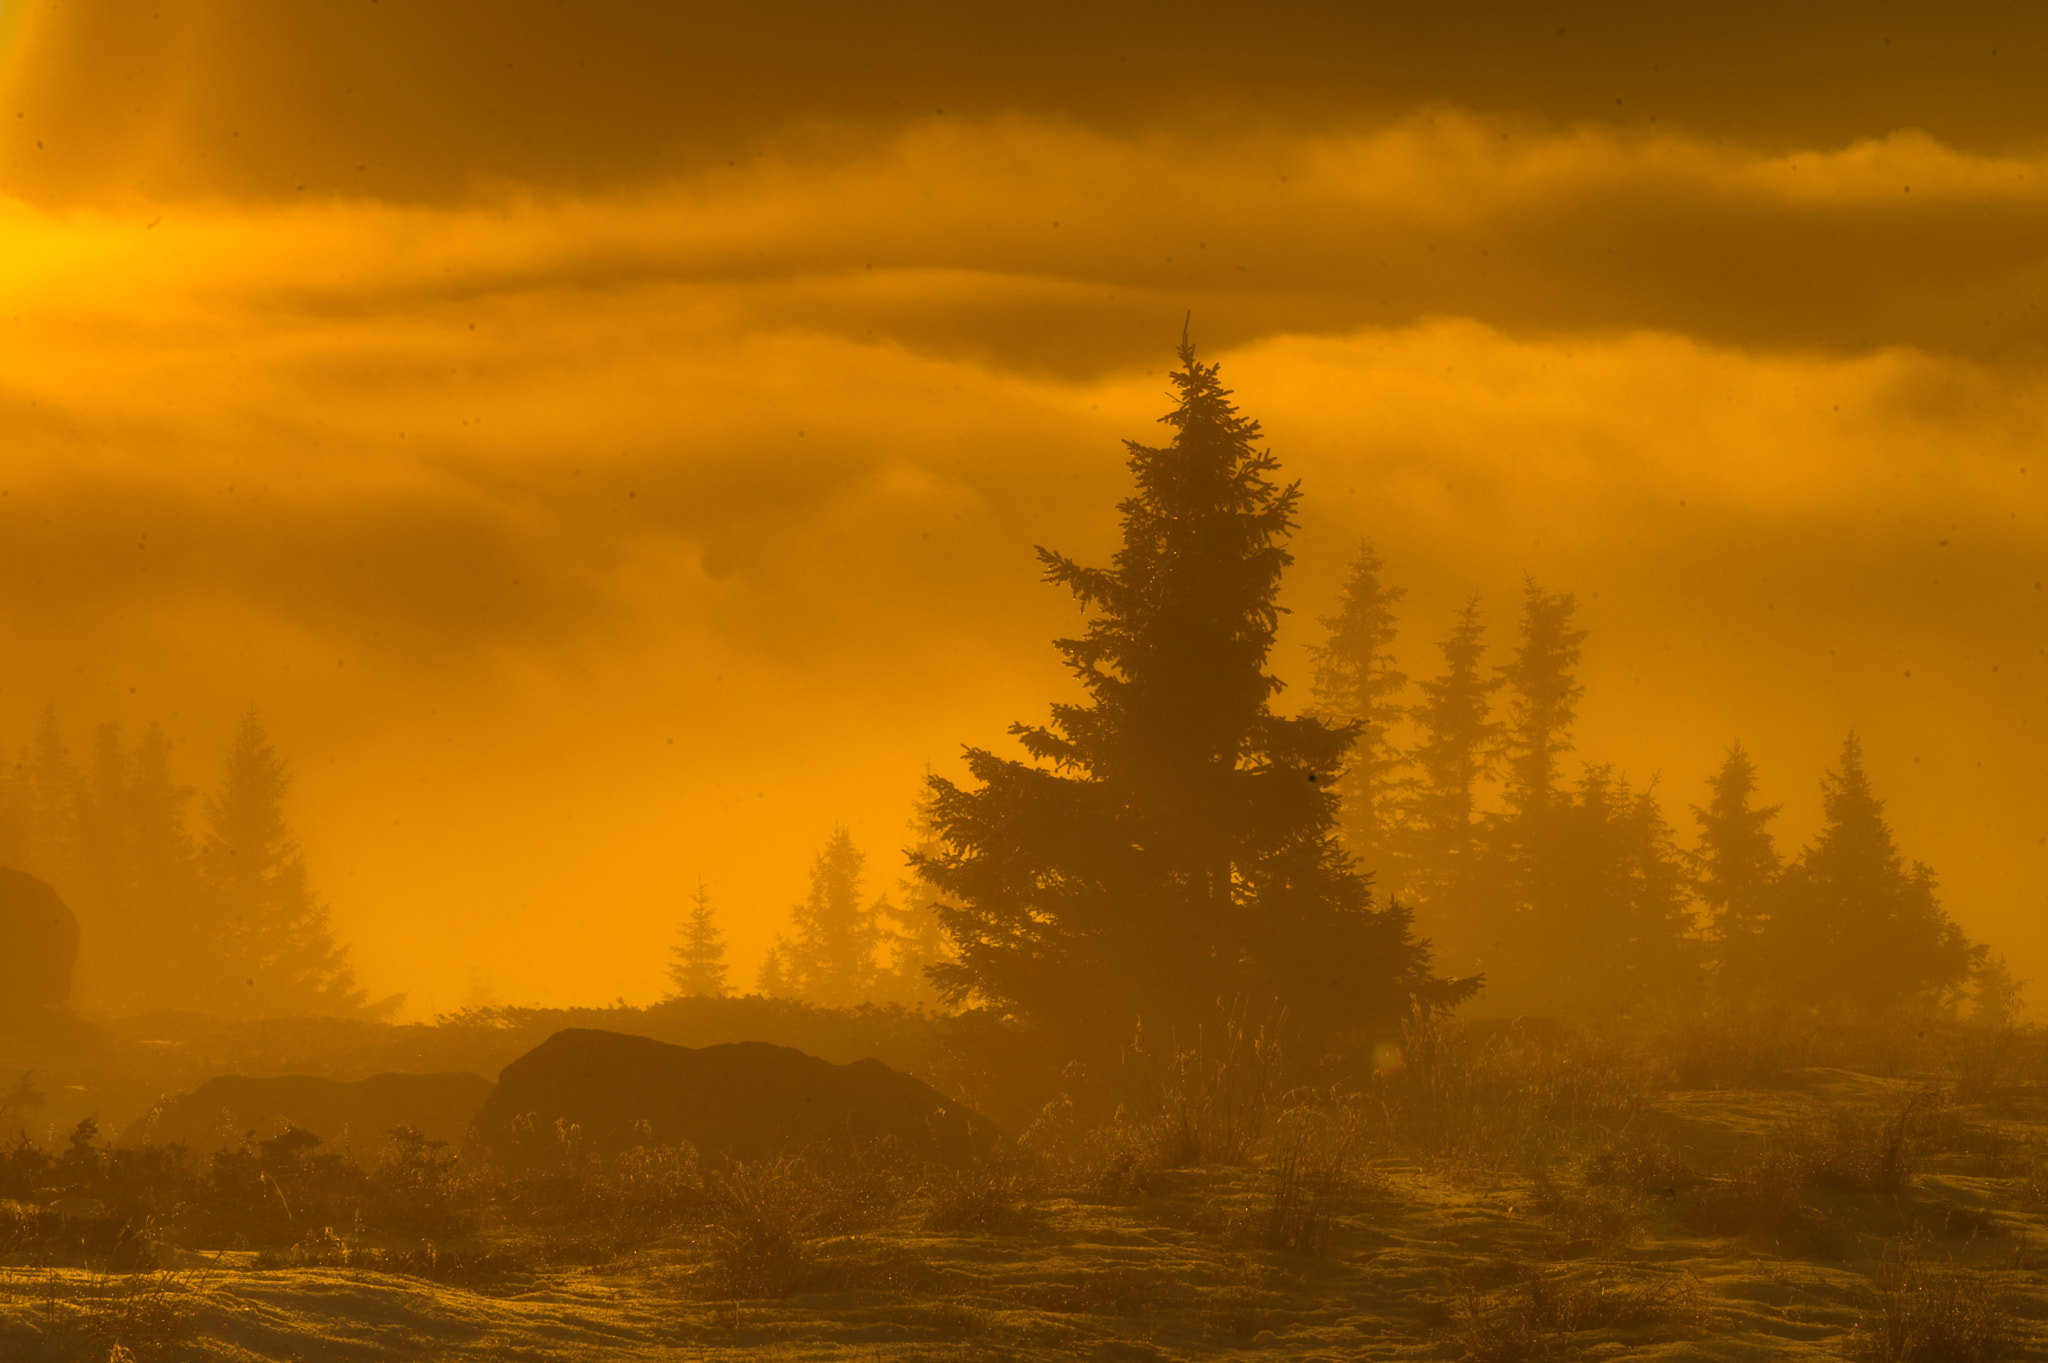 Photograph Misty sunset on top of the mountains by Jørn Allan Pedersen on 500px